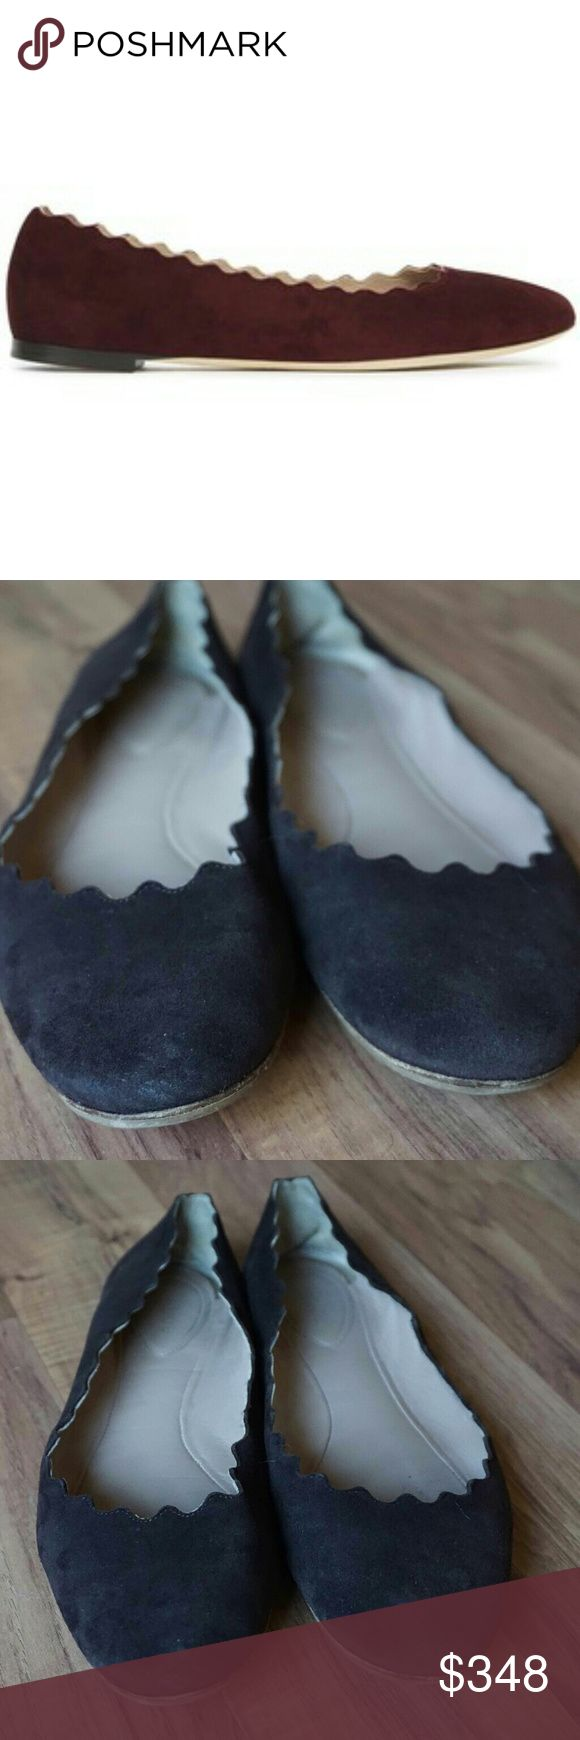 Chloe Brown Suede Lauren Scalloped Ballet flats A scalloped top line lends feminine elegance to a round toe leather flat that looks pretty peeking out from your favorite denim. These are classic Chloe flats, in great used shape. Some wear on sole but ready to be enjoyed! Chloe Shoes Flats & Loafers